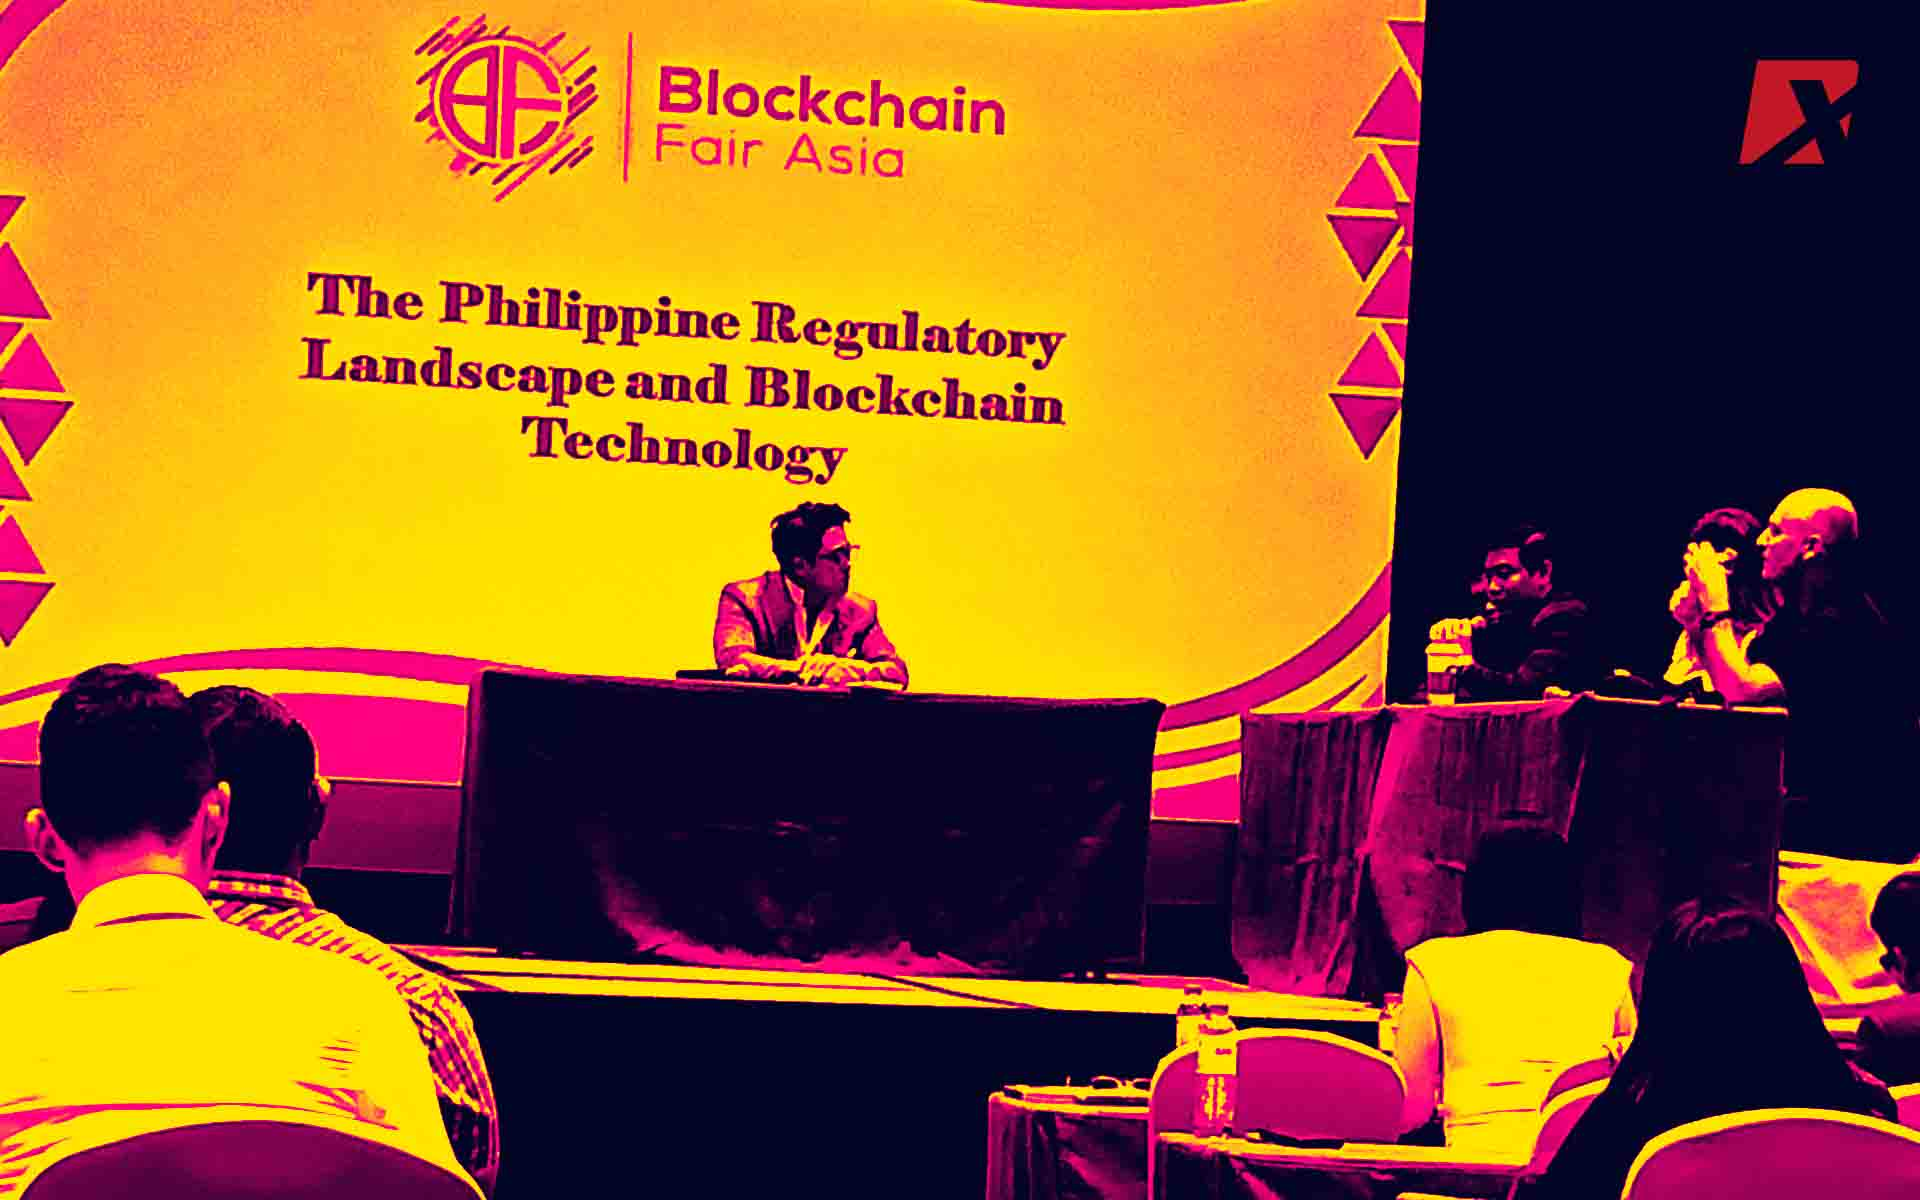 Regulation Is A Hot Topic At Blockchain Fair Asia